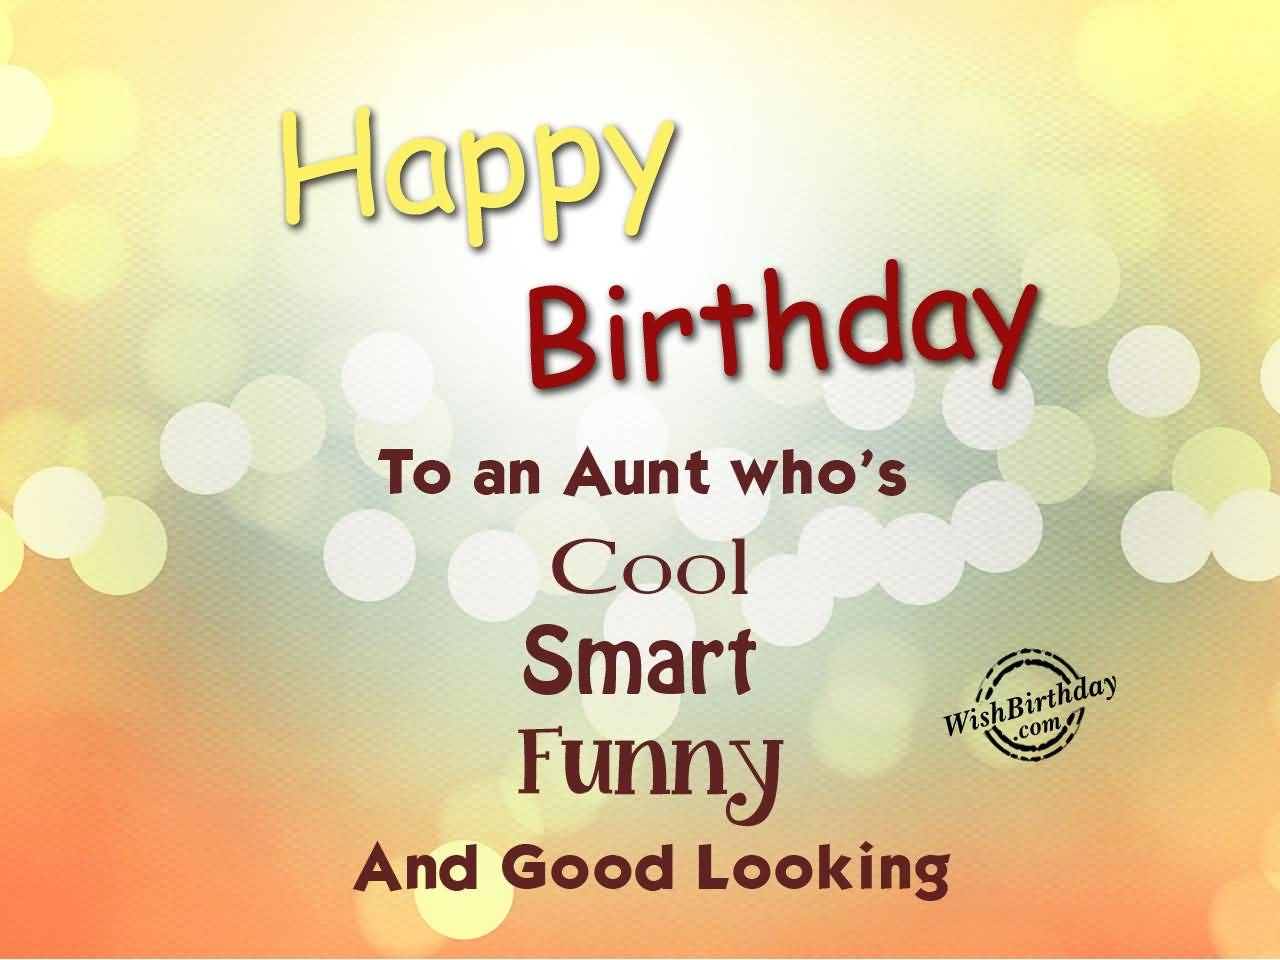 Happy Birthday Ta An Aunt Who's Cool Smart Funny And Good Looking